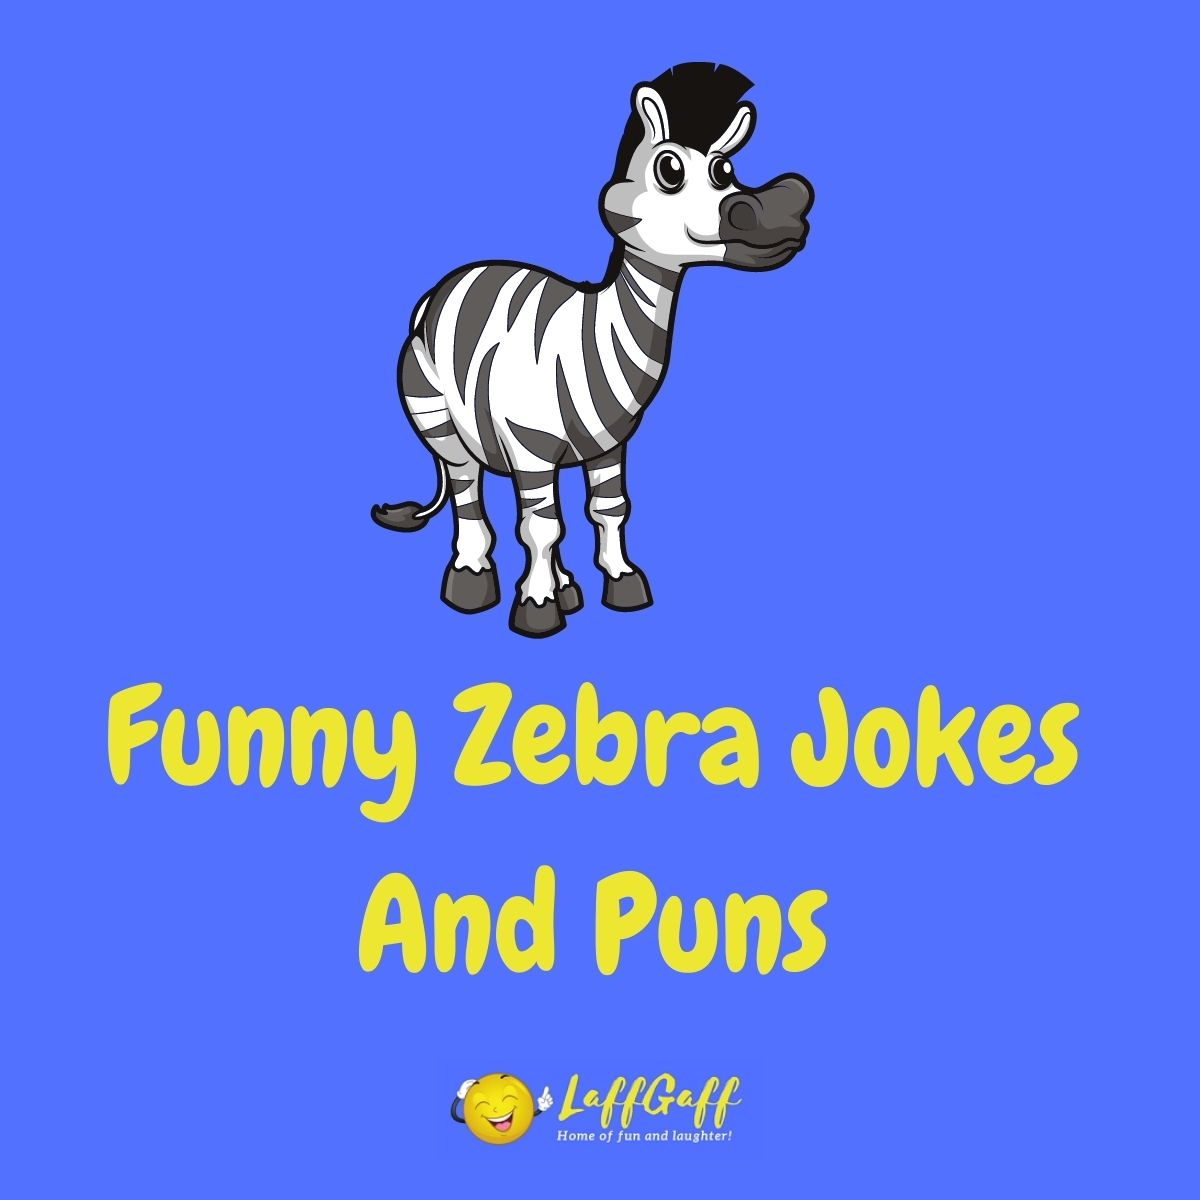 Featured image for a page of funny zebra jokes and puns.